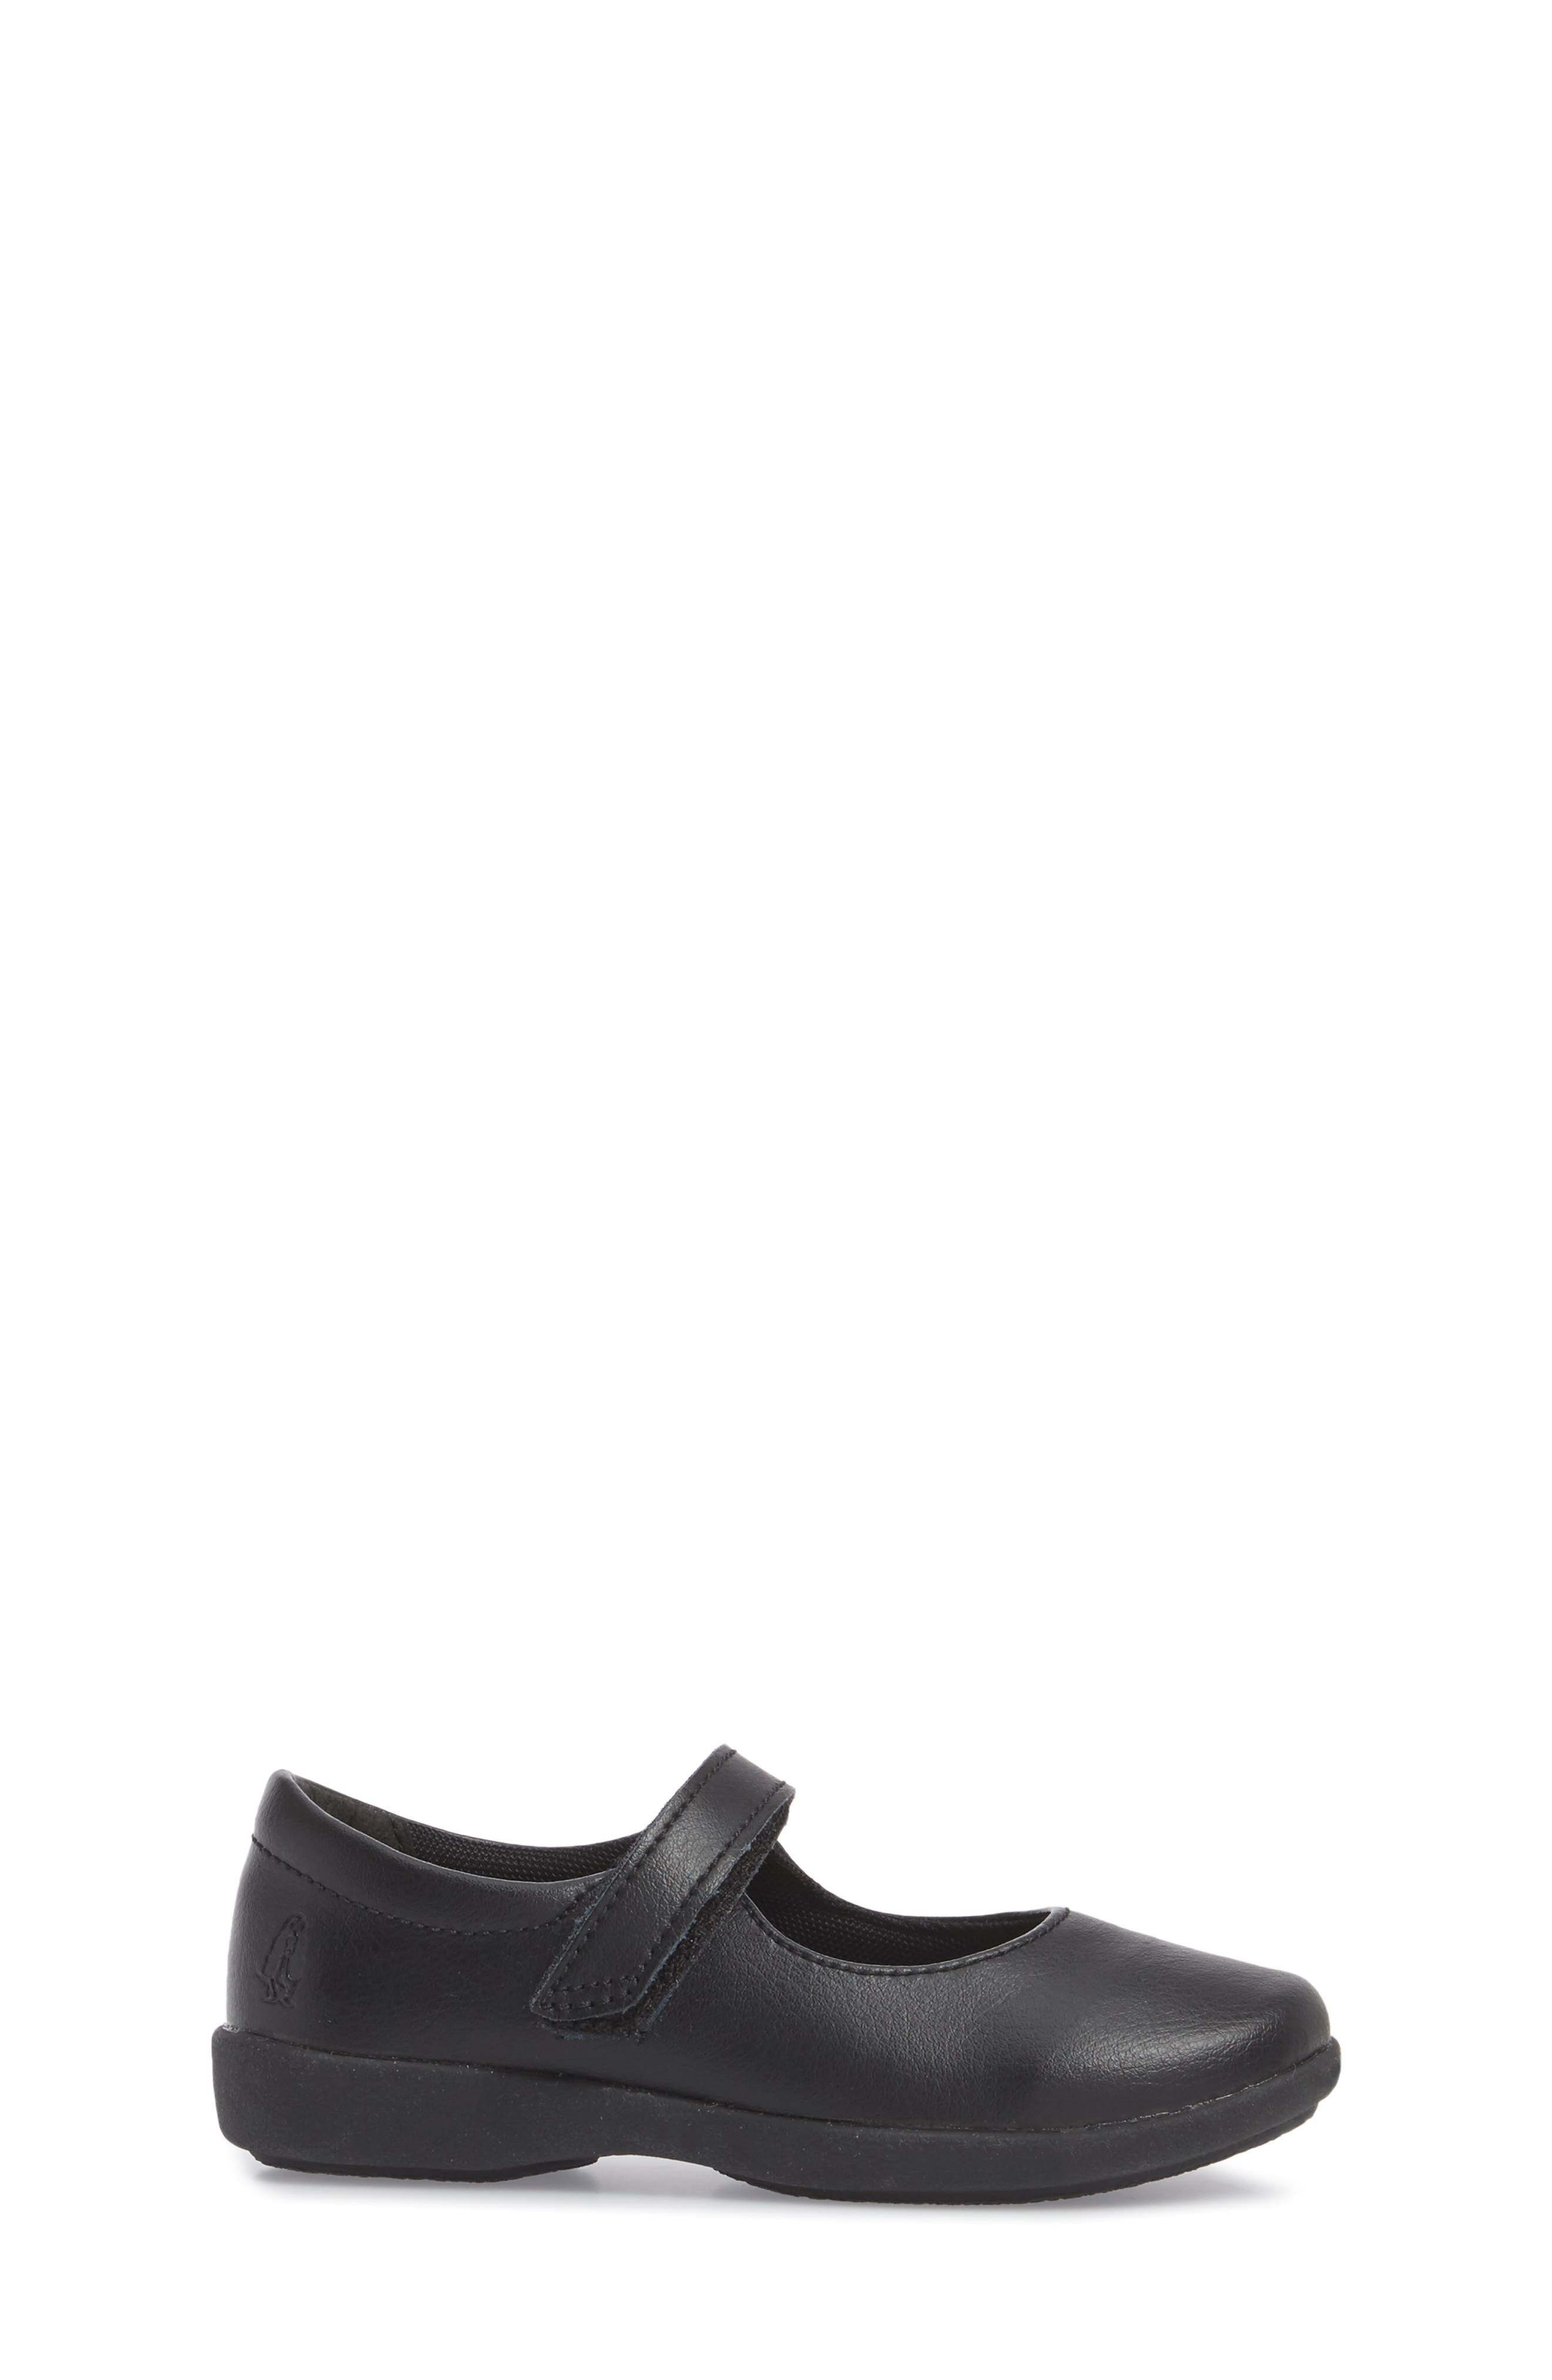 HUSH PUPPIES<SUP>®</SUP>, Lexi Mary Jane Flat, Alternate thumbnail 3, color, BLACK LEATHER